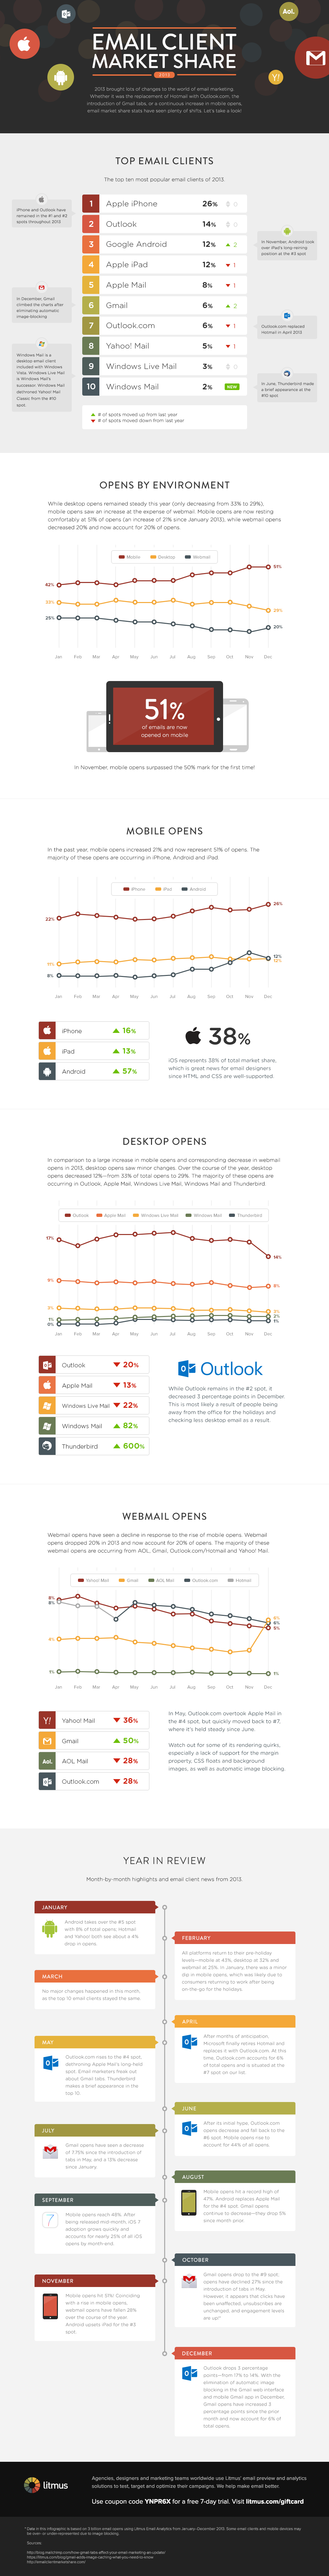 litmus-email-client-market-share-2013-infographic